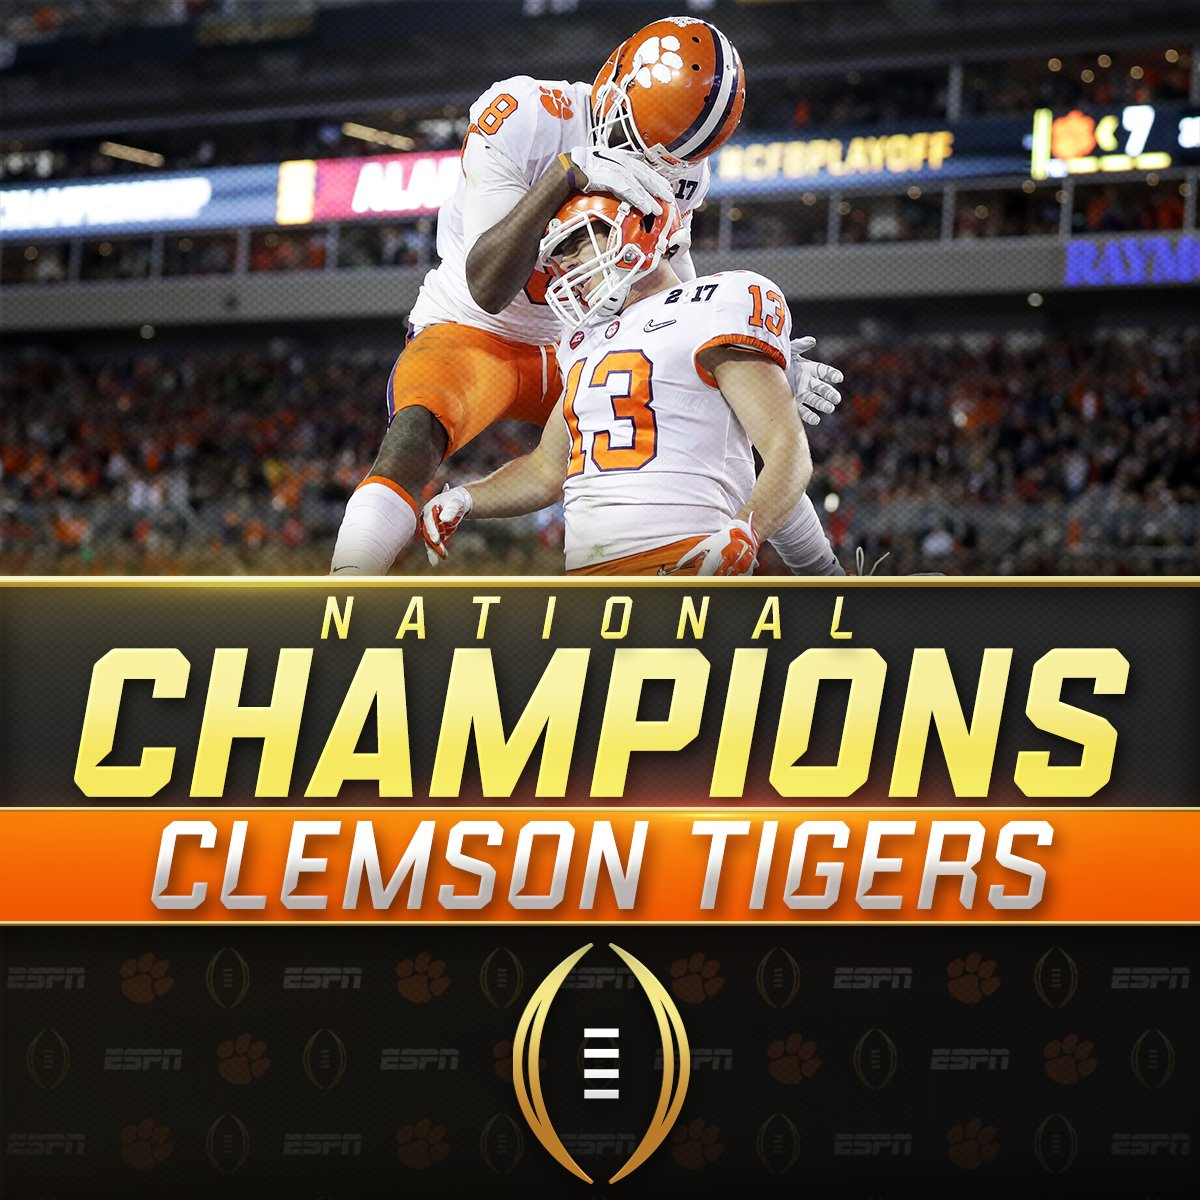 NATIONAL. CHAMPIONS.  Clemson takes down Alabama 35-31 to win its first #NationalChampionship since 1981! https://t.co/LA4EzJUVtH